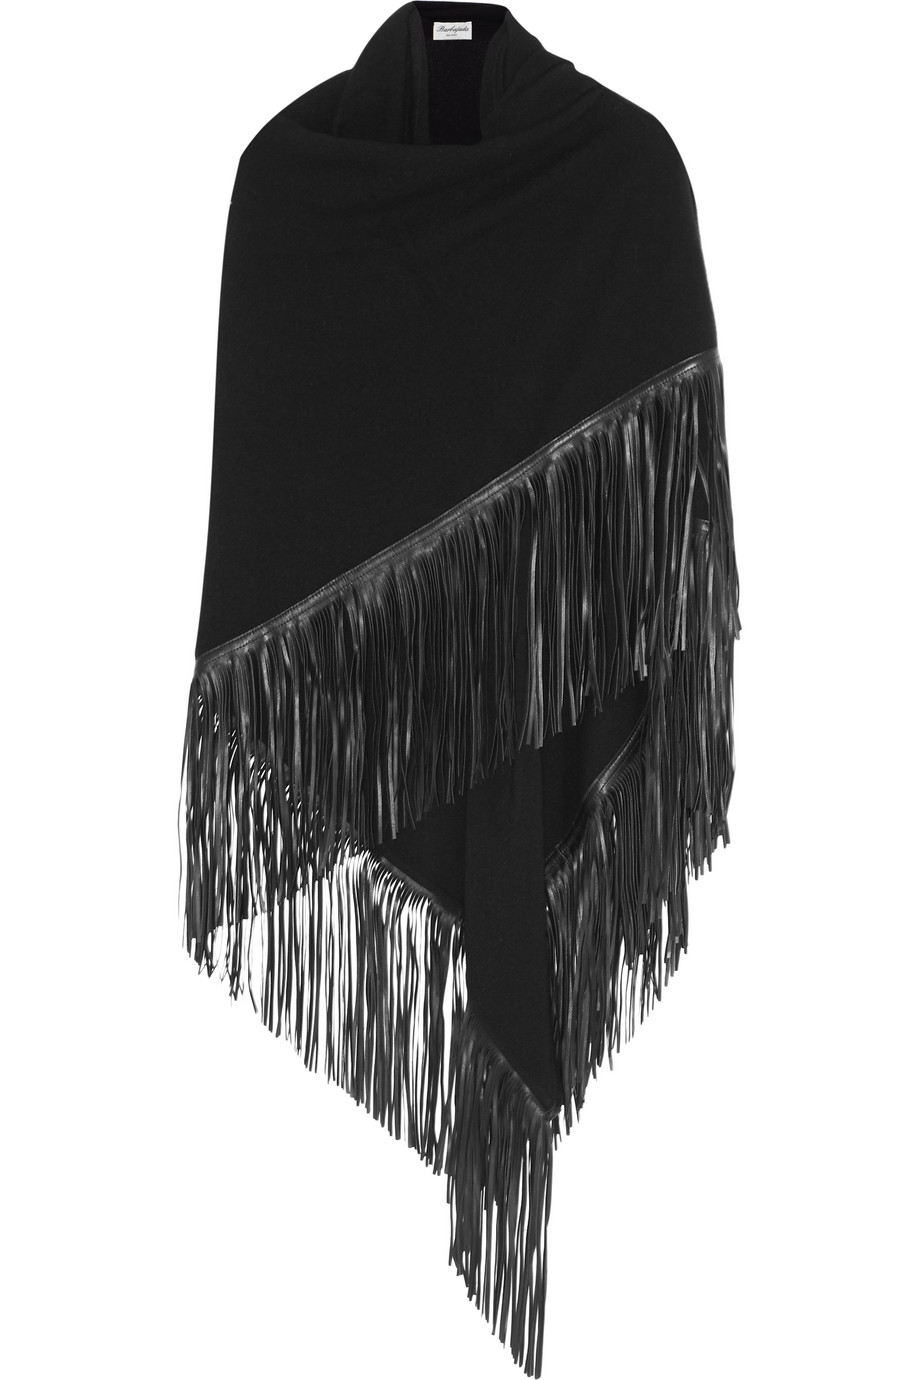 Fringed Leather and Cashmere Wrap, Black, Women's